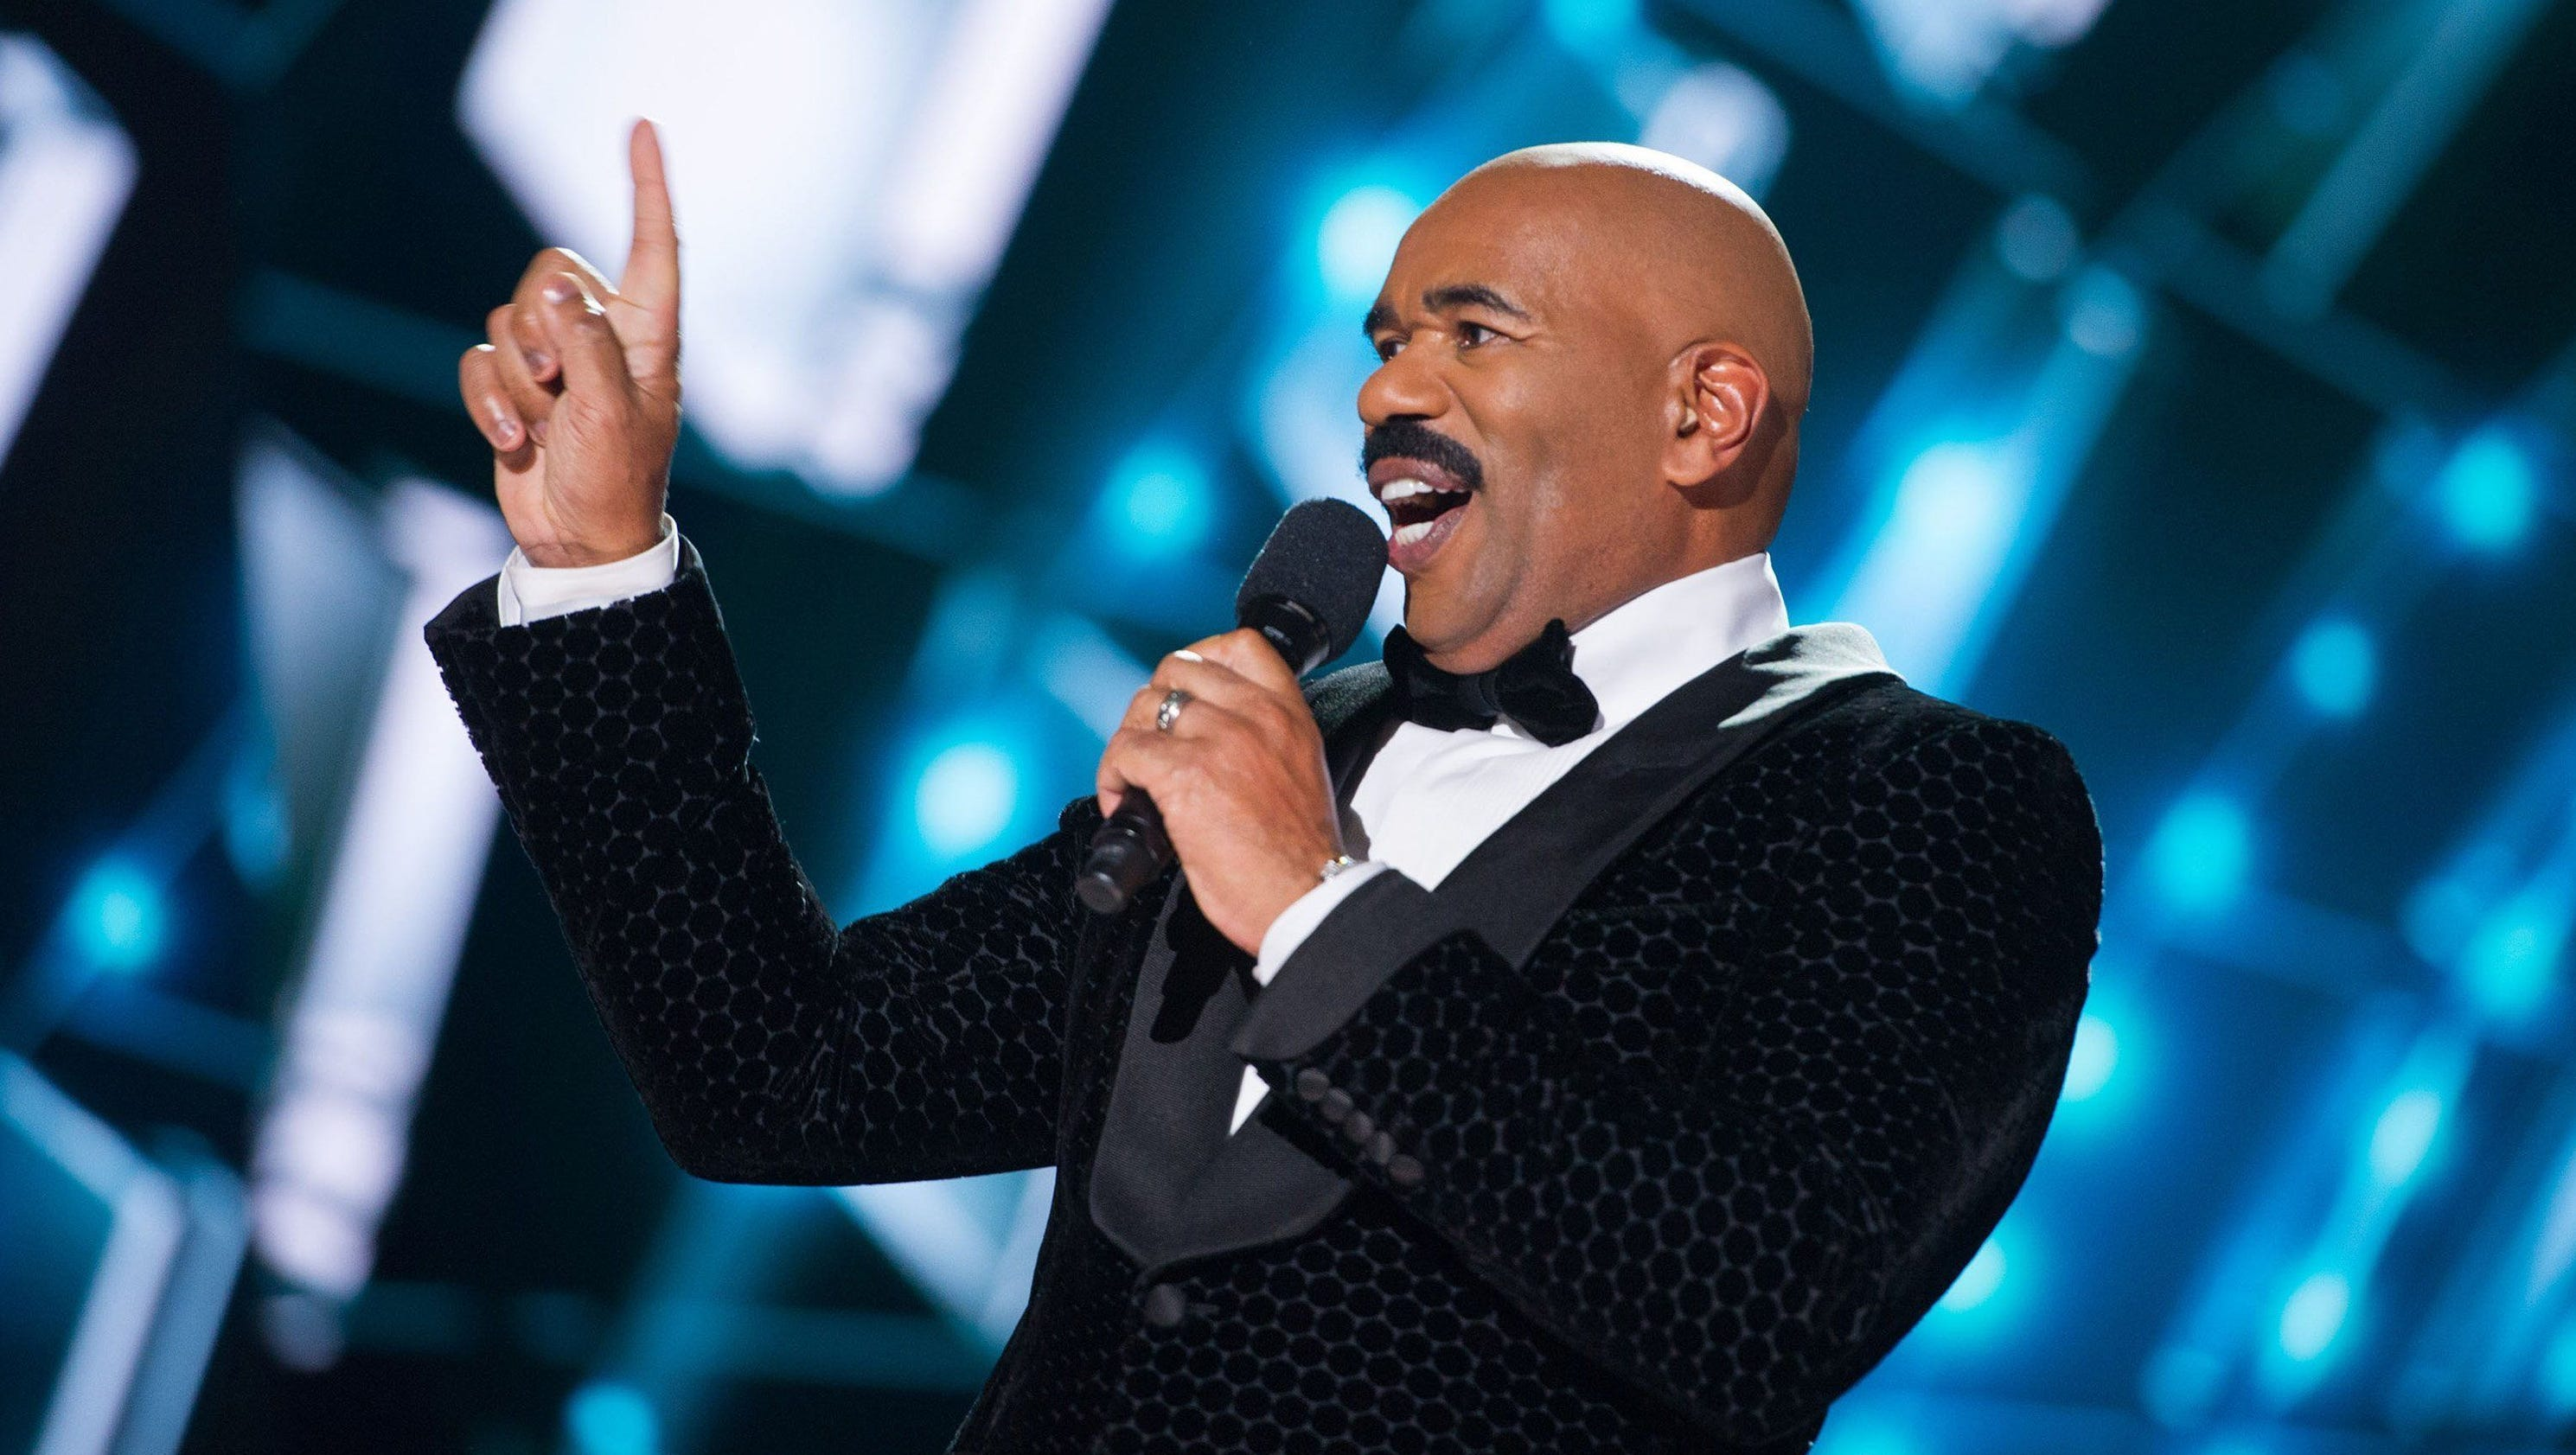 steve harvey life story Steve harvey can still recall god's message to him when he suffered from being homeless decades ago.